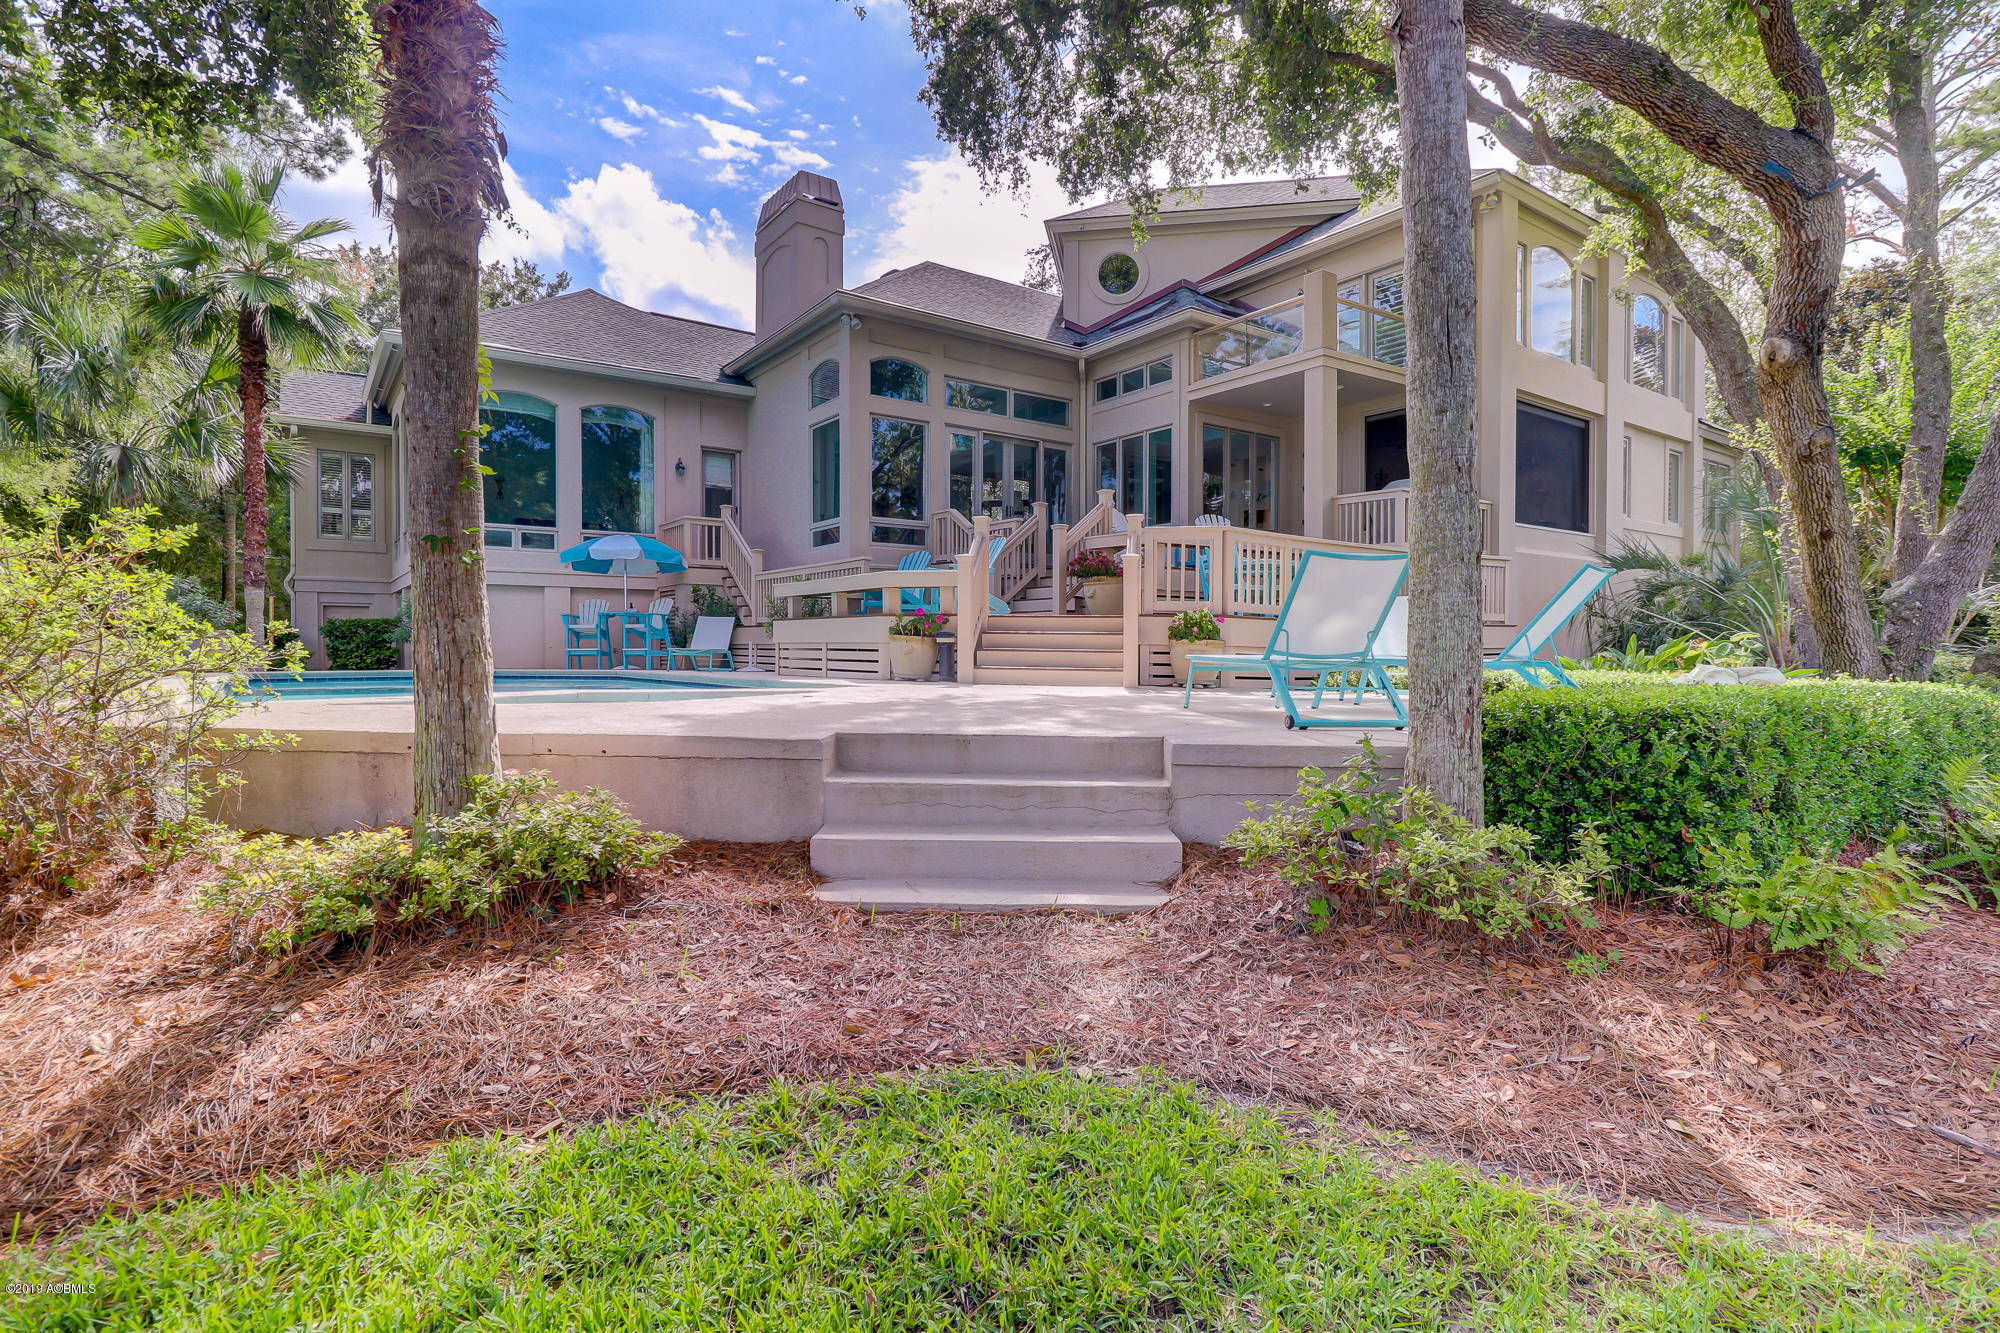 Photo of 18 Midstream, Hilton Head Island, SC 29928